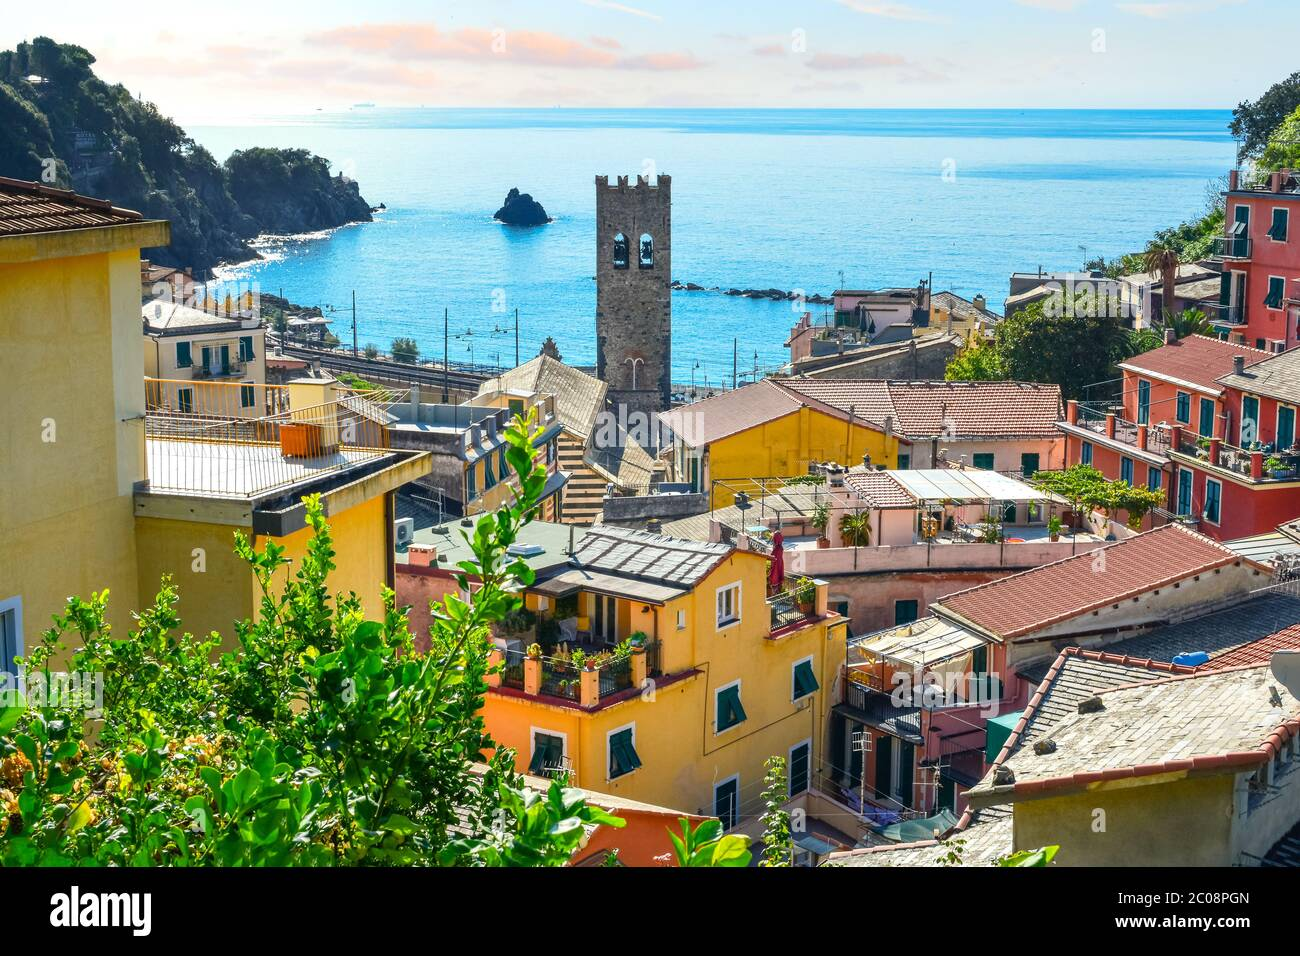 The blue Ligurian sea and coast from the town of Monterosso al Mare, on the Italian Riviera of Cinque Terre Italy with the church tower in view Stock Photo